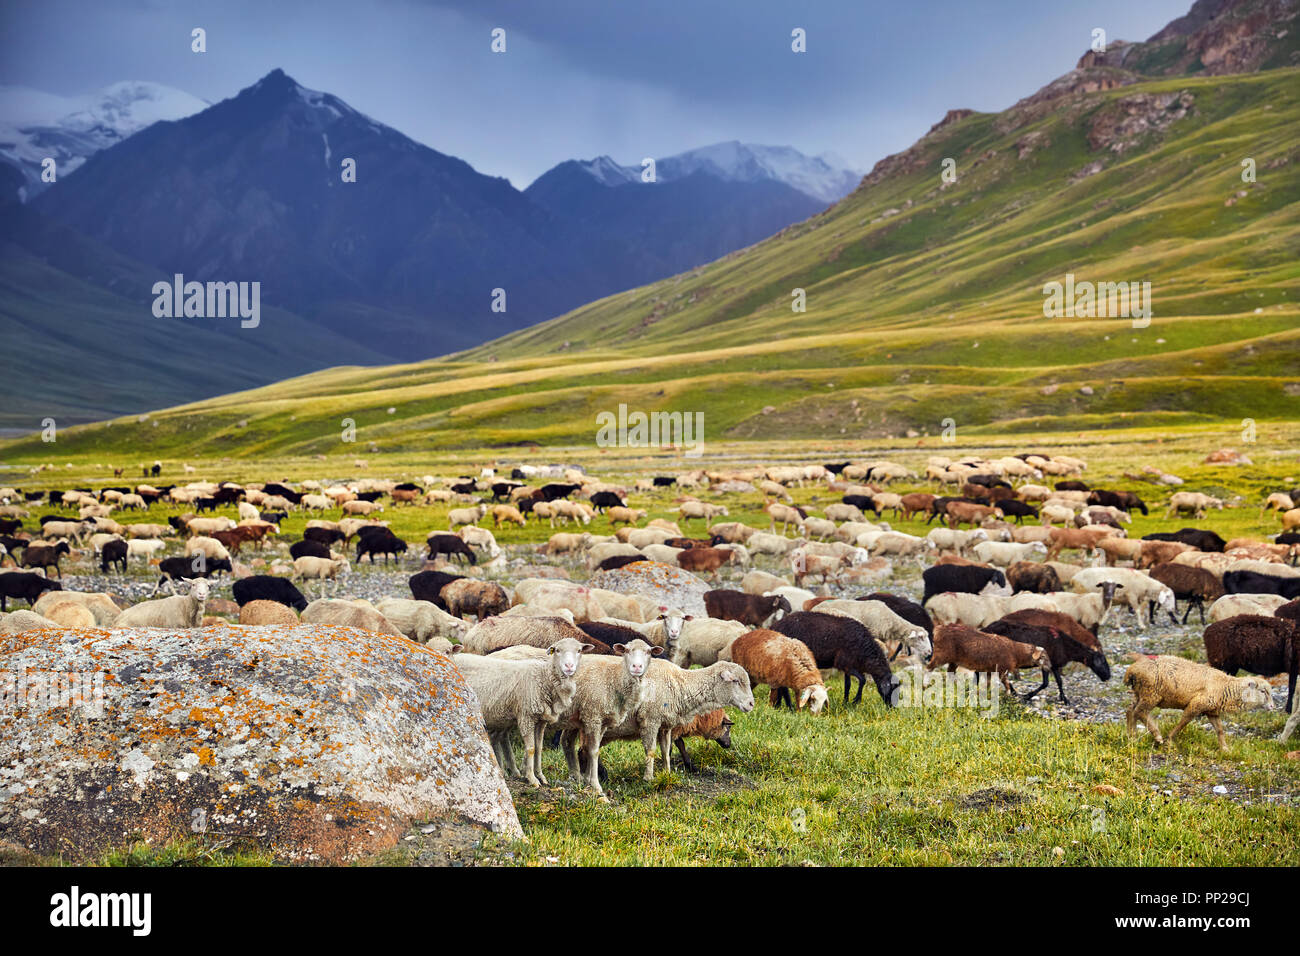 Sheep in near the rock in Terskey Alatau mountains of Kyrgyzstan, Central Asia - Stock Image